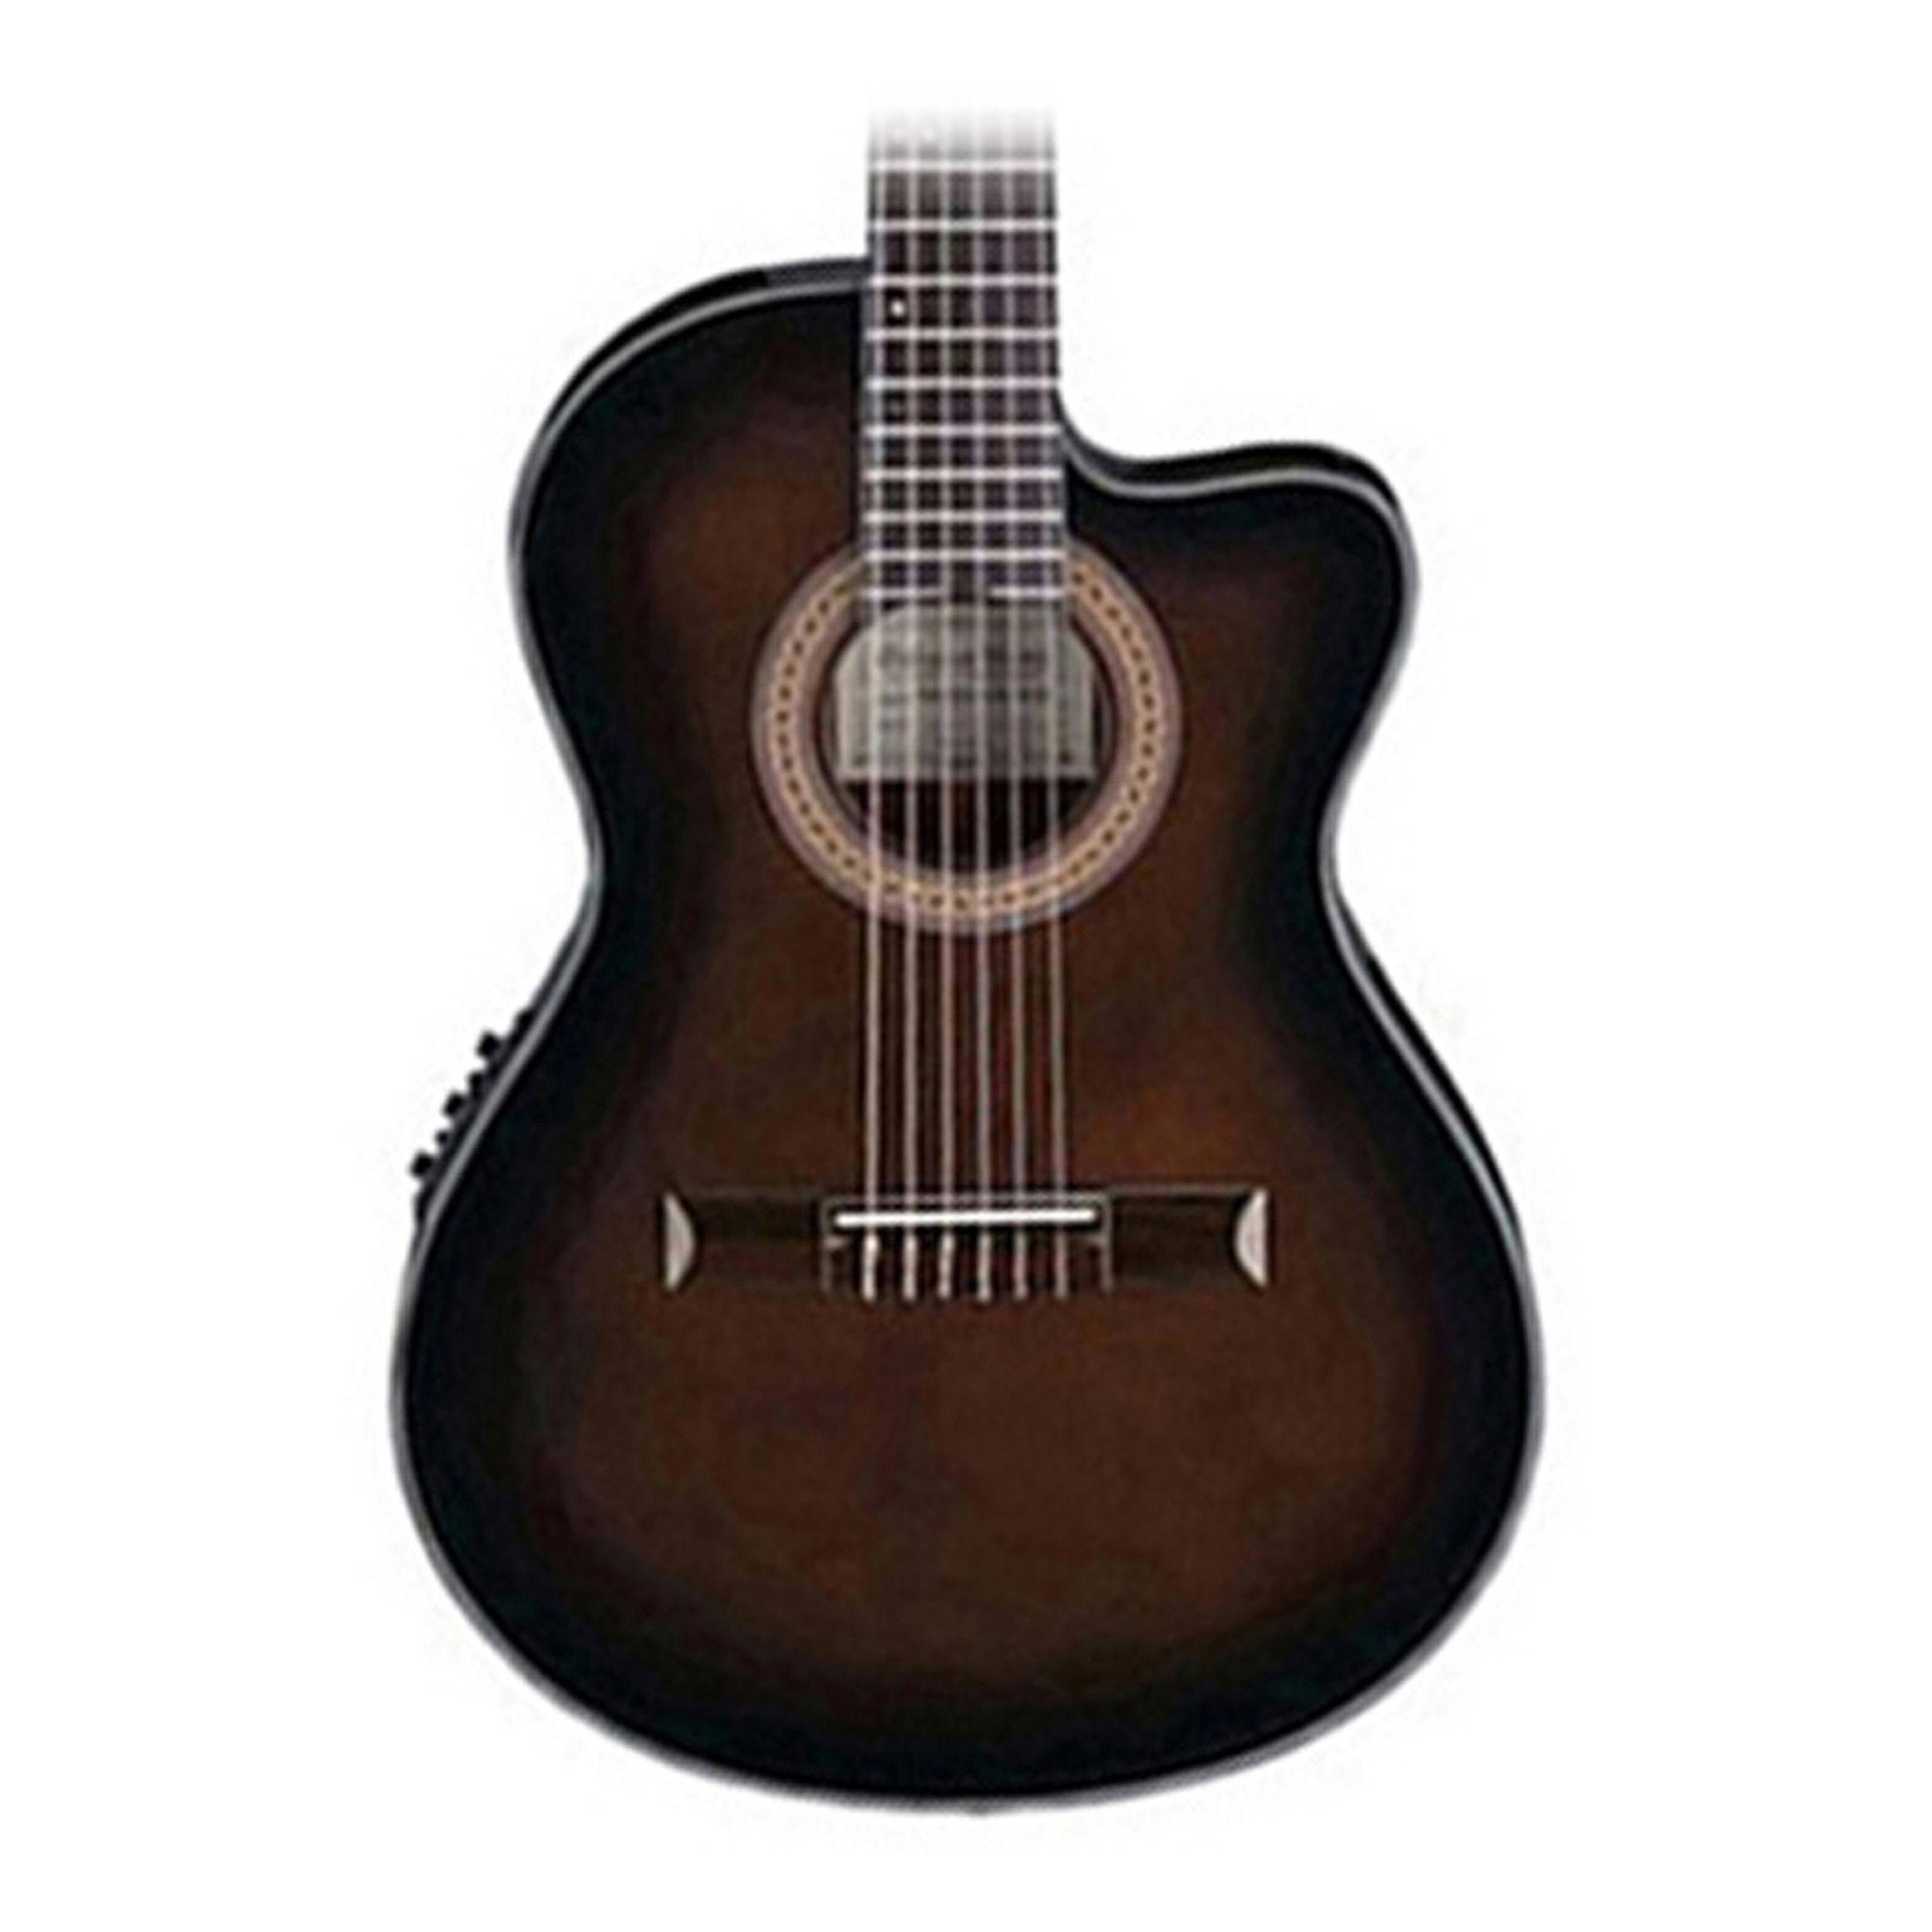 ibanez ga35tce thinline acoustic electric classical guitar in dark violin burst. Black Bedroom Furniture Sets. Home Design Ideas